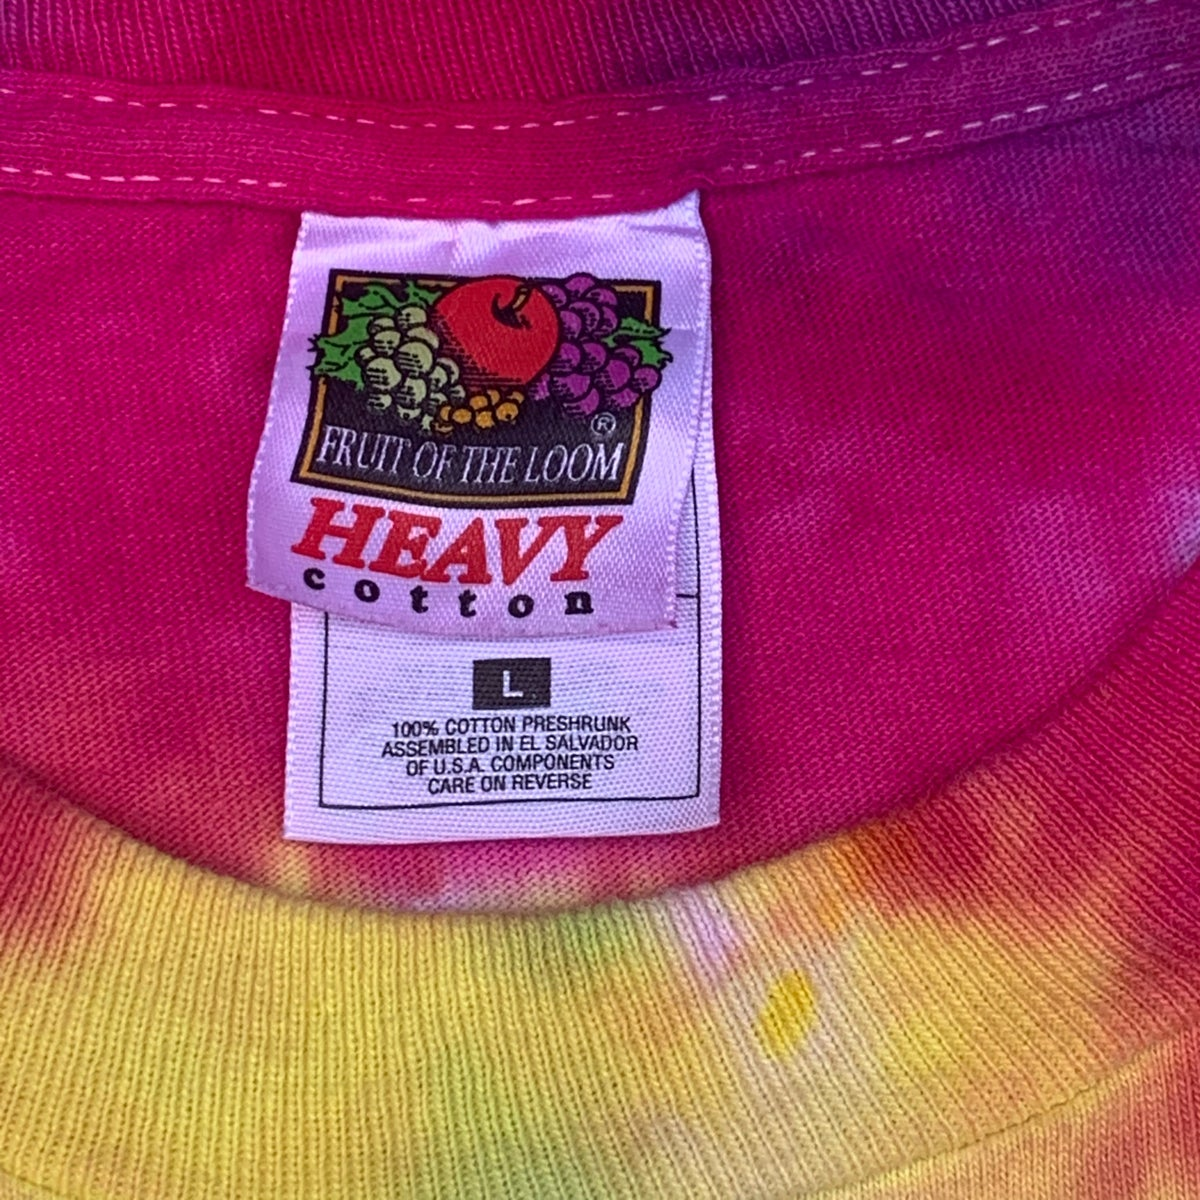 Original Vintage Grateful Dead Jerry Lot Tee 1990's!! Large